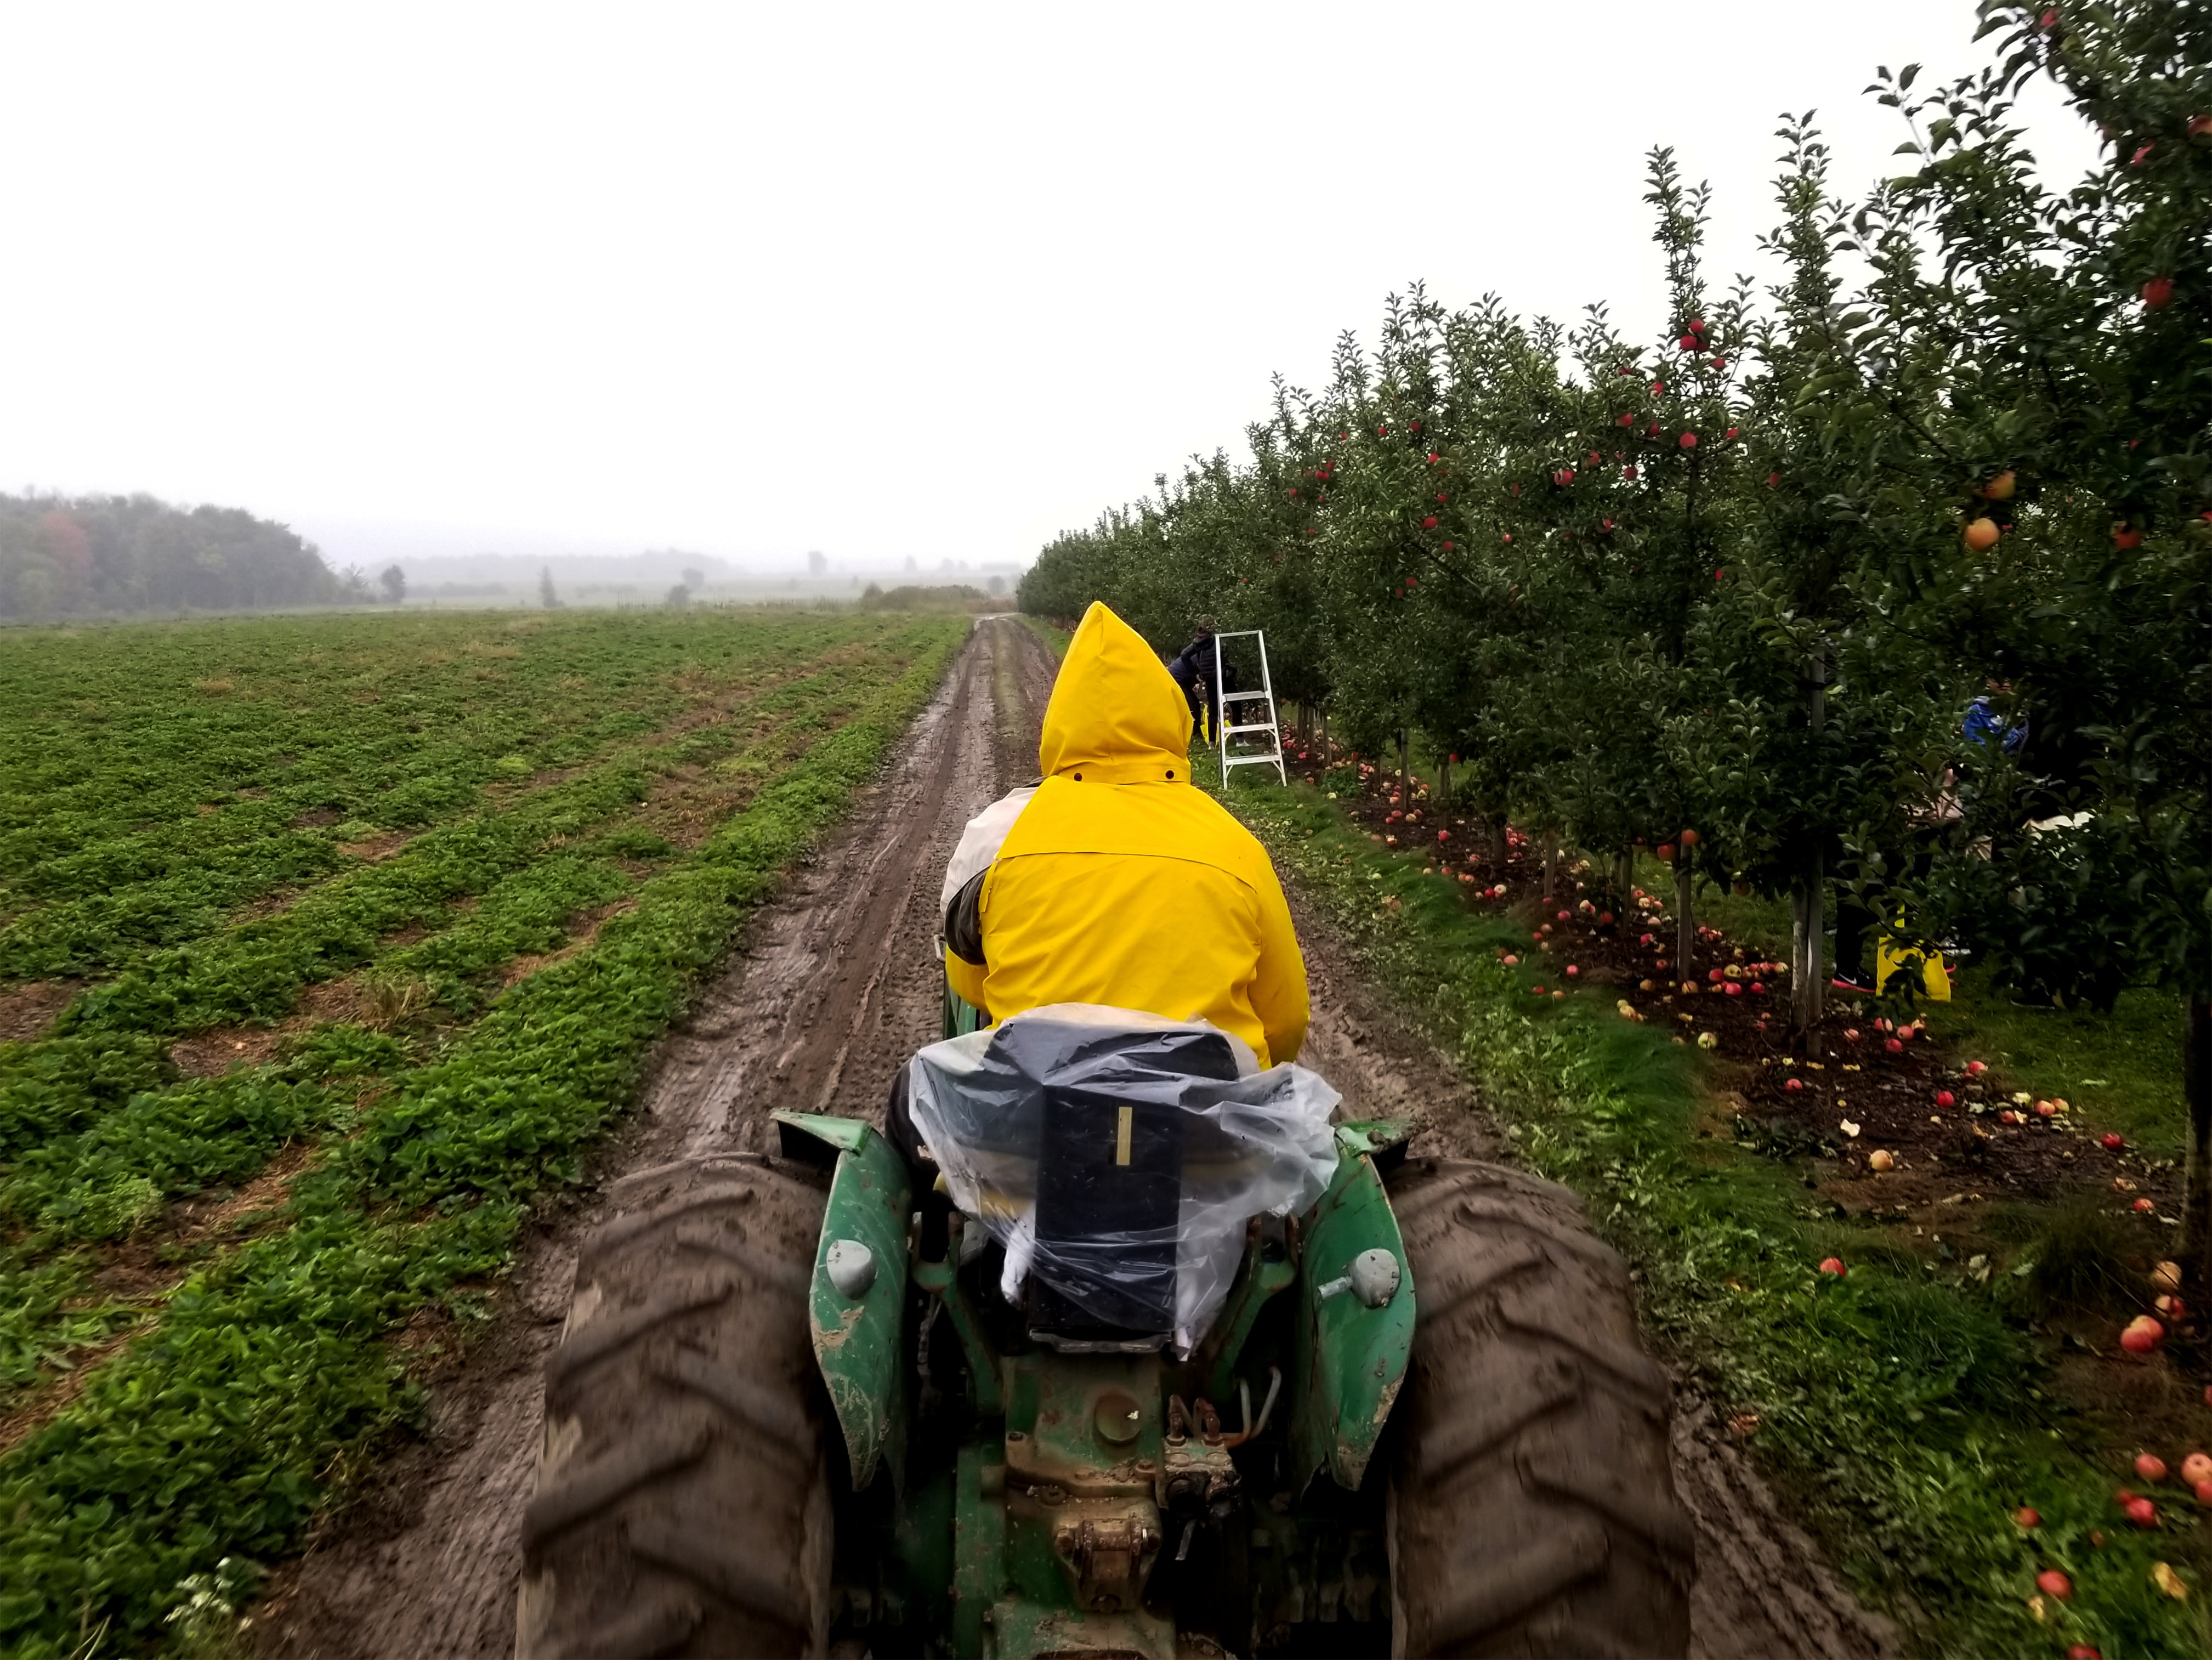 man riding tractor traveling road between plants during daytime